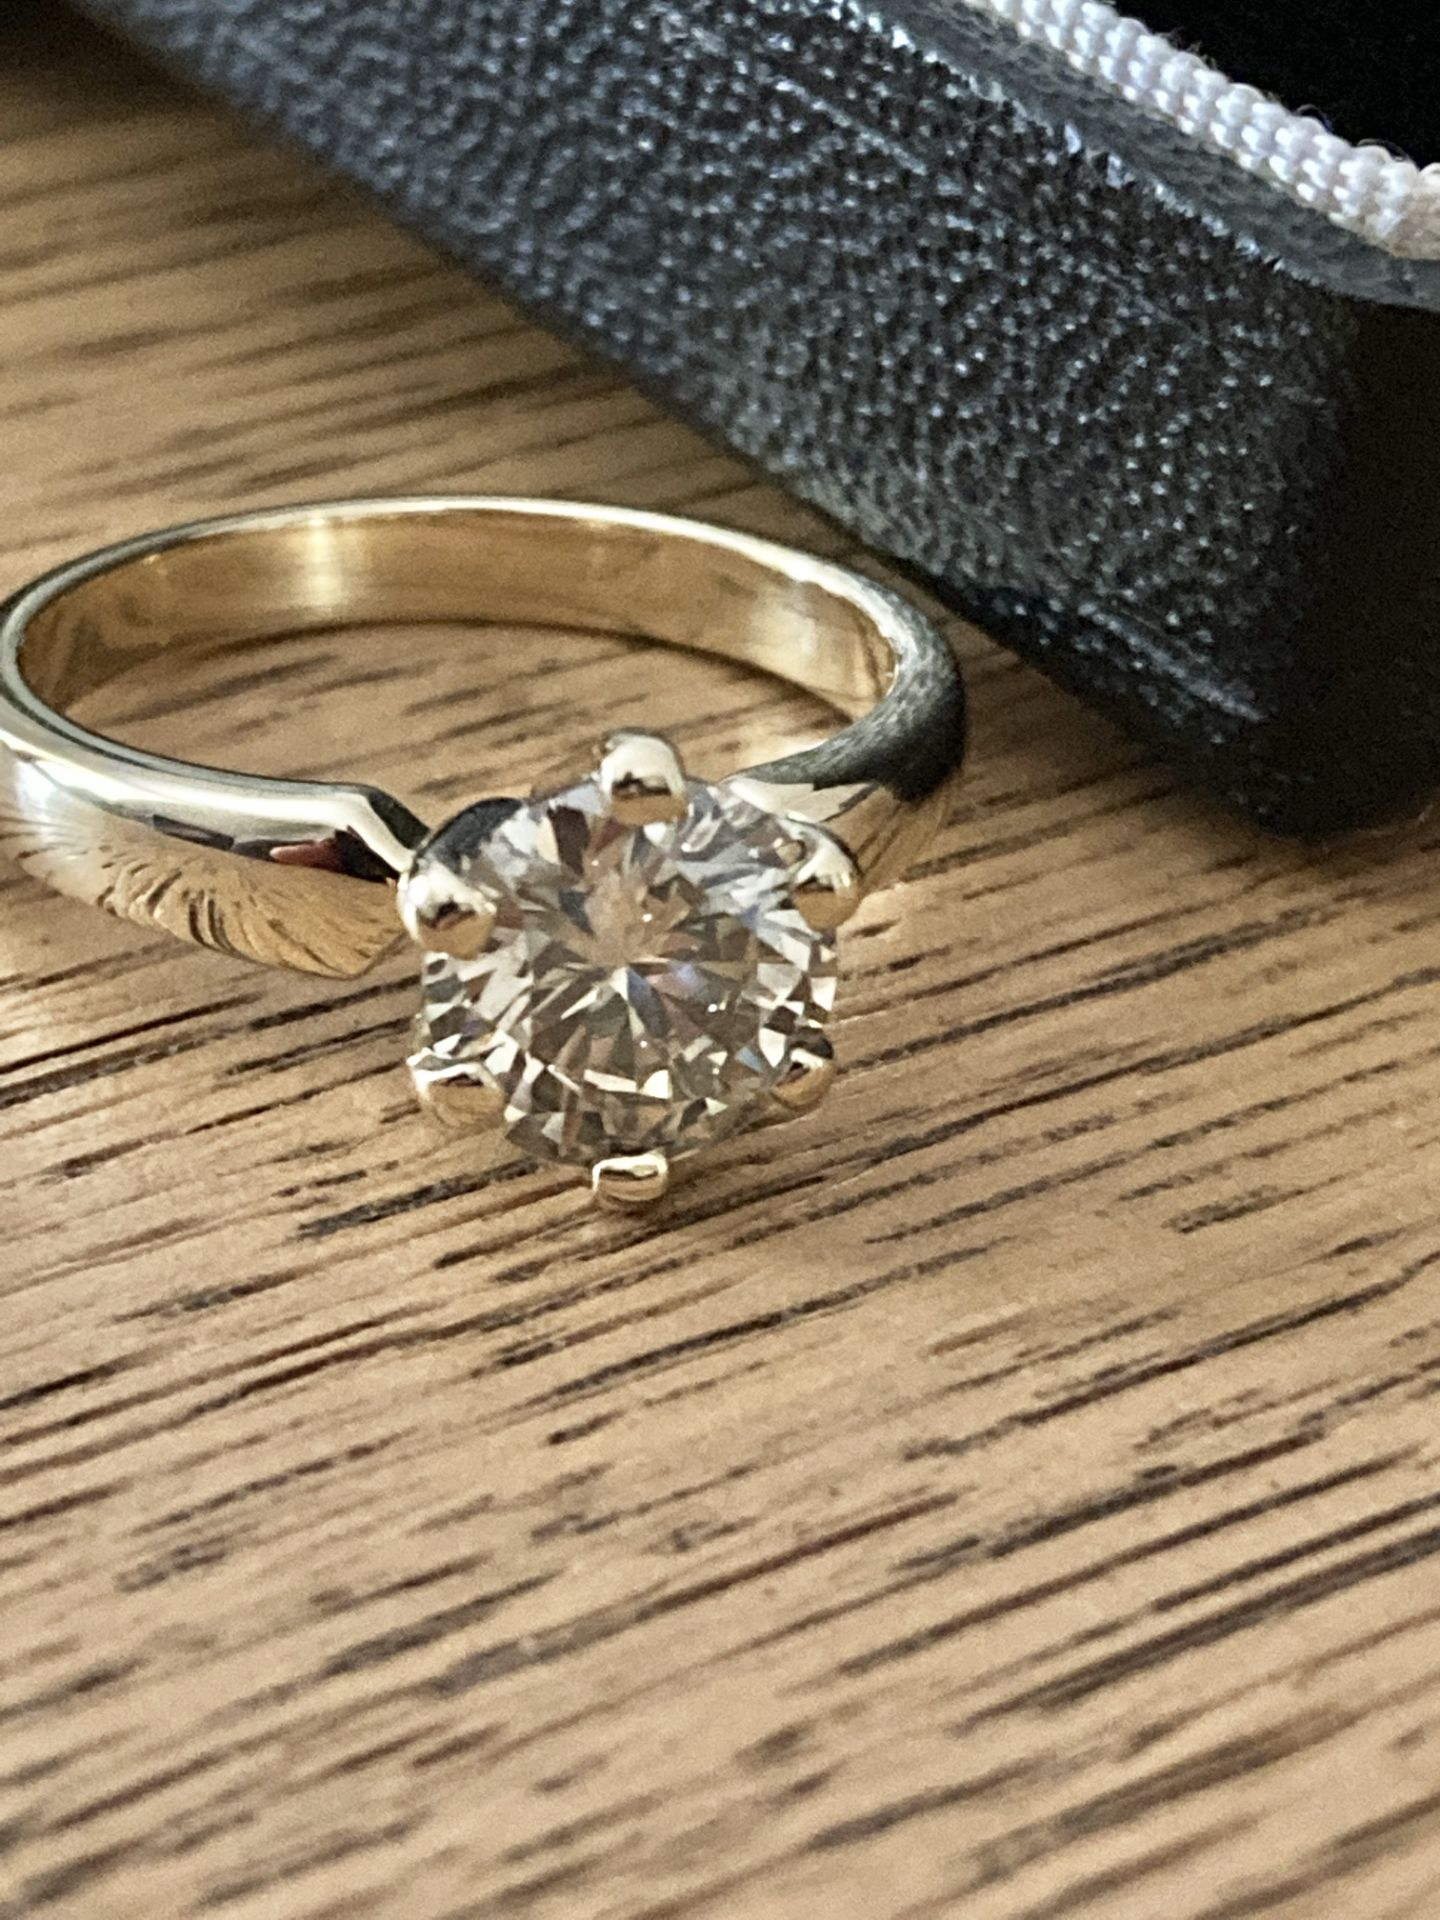 1.54CT DIAMOND SOLITAIRE RING Y. GOLD (ROUND BRILLIANT) - 2012 VALUATION £6,200 INCLUDED - Image 14 of 14